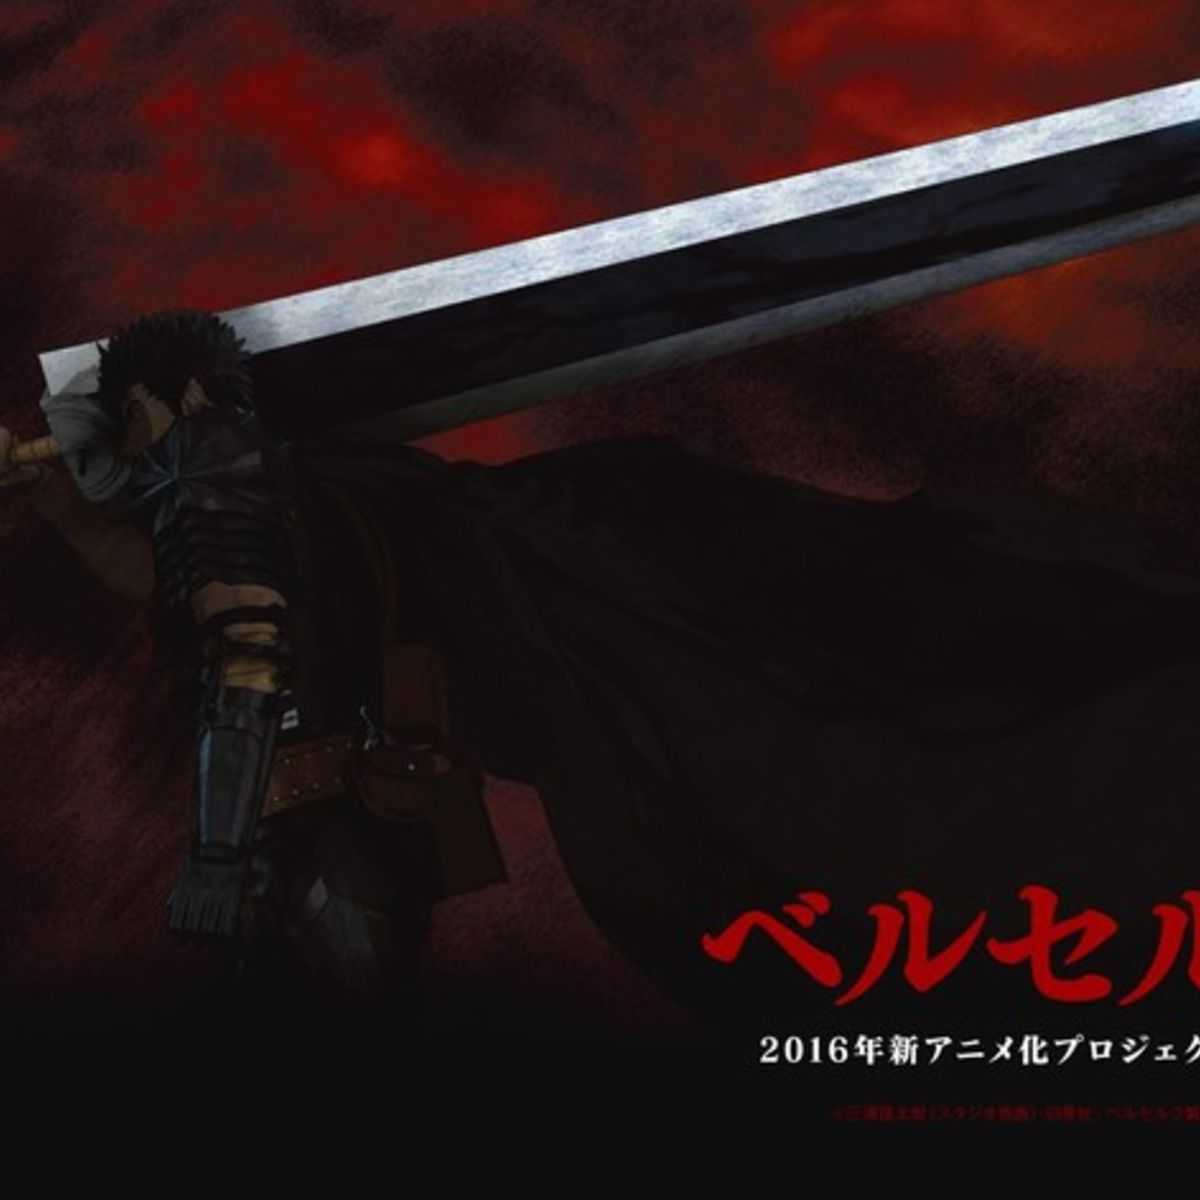 Nbc Unveils Our First Action Packed Look At The New Berserk Anime